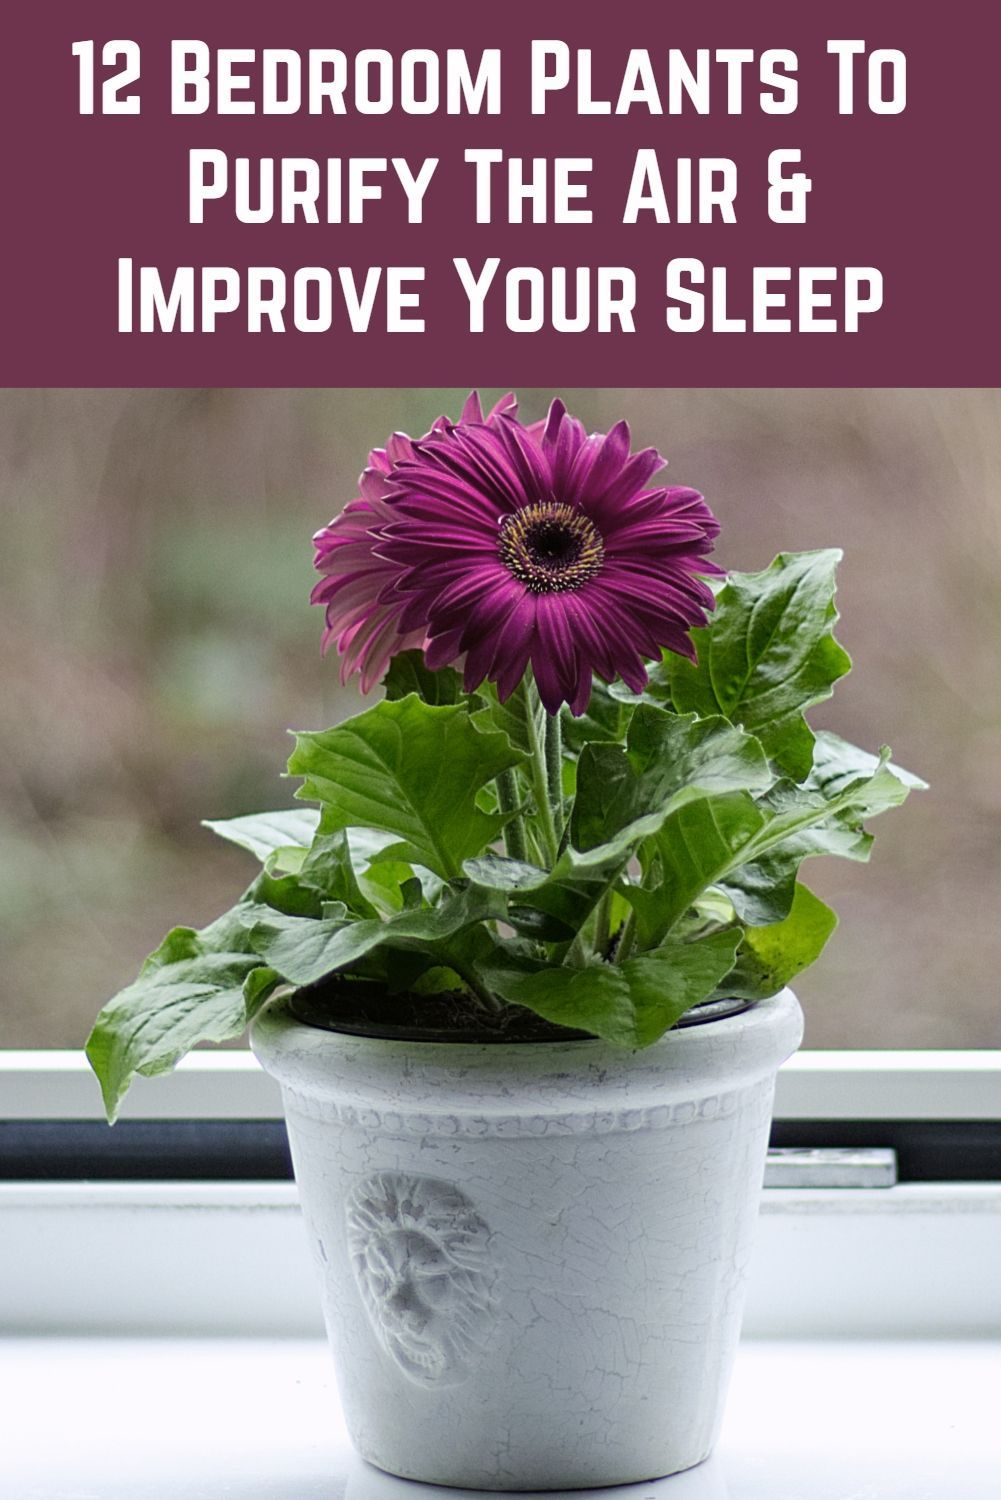 Add one or two of these to your bedroom to purify the air and induce a restful slumber.